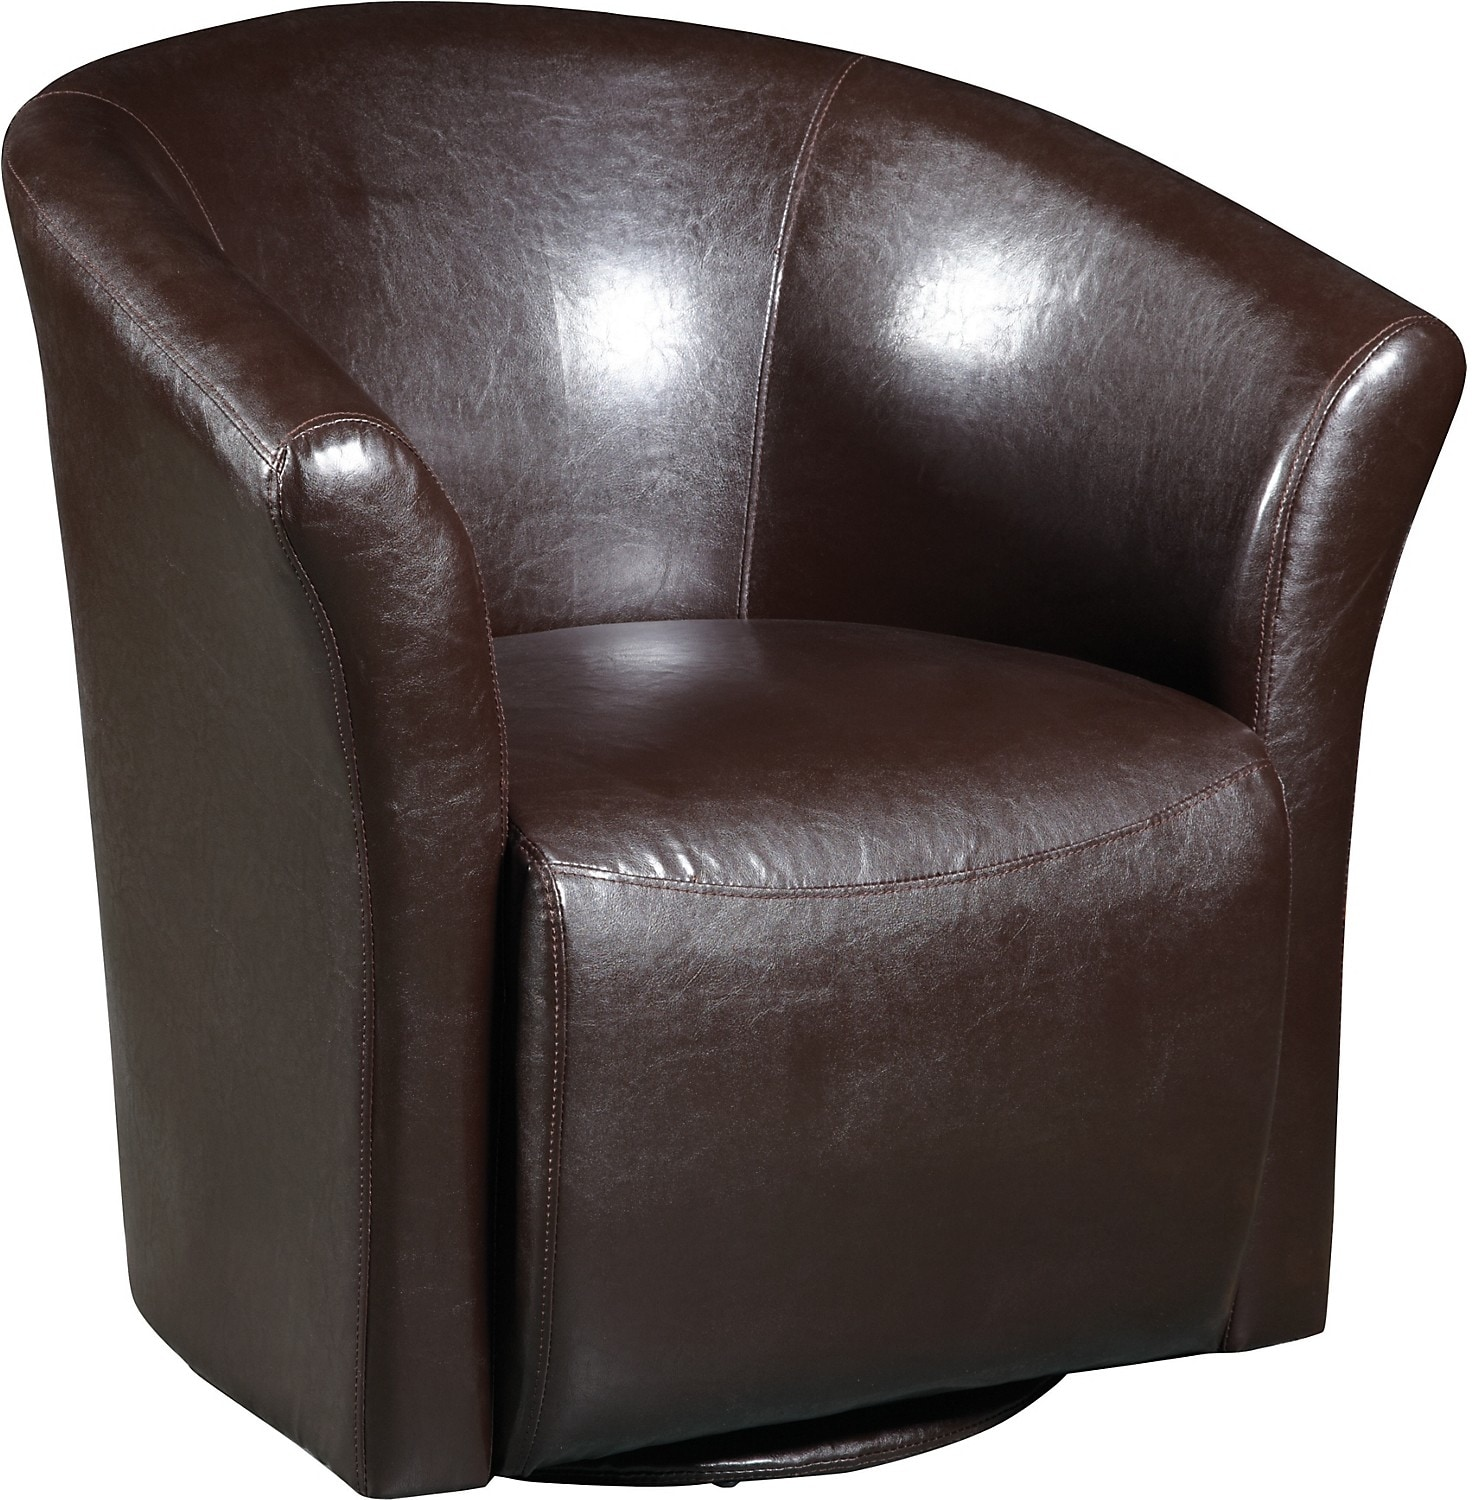 Rooms To Go Swivel Chair Brown Swivel Accent Chair The Brick